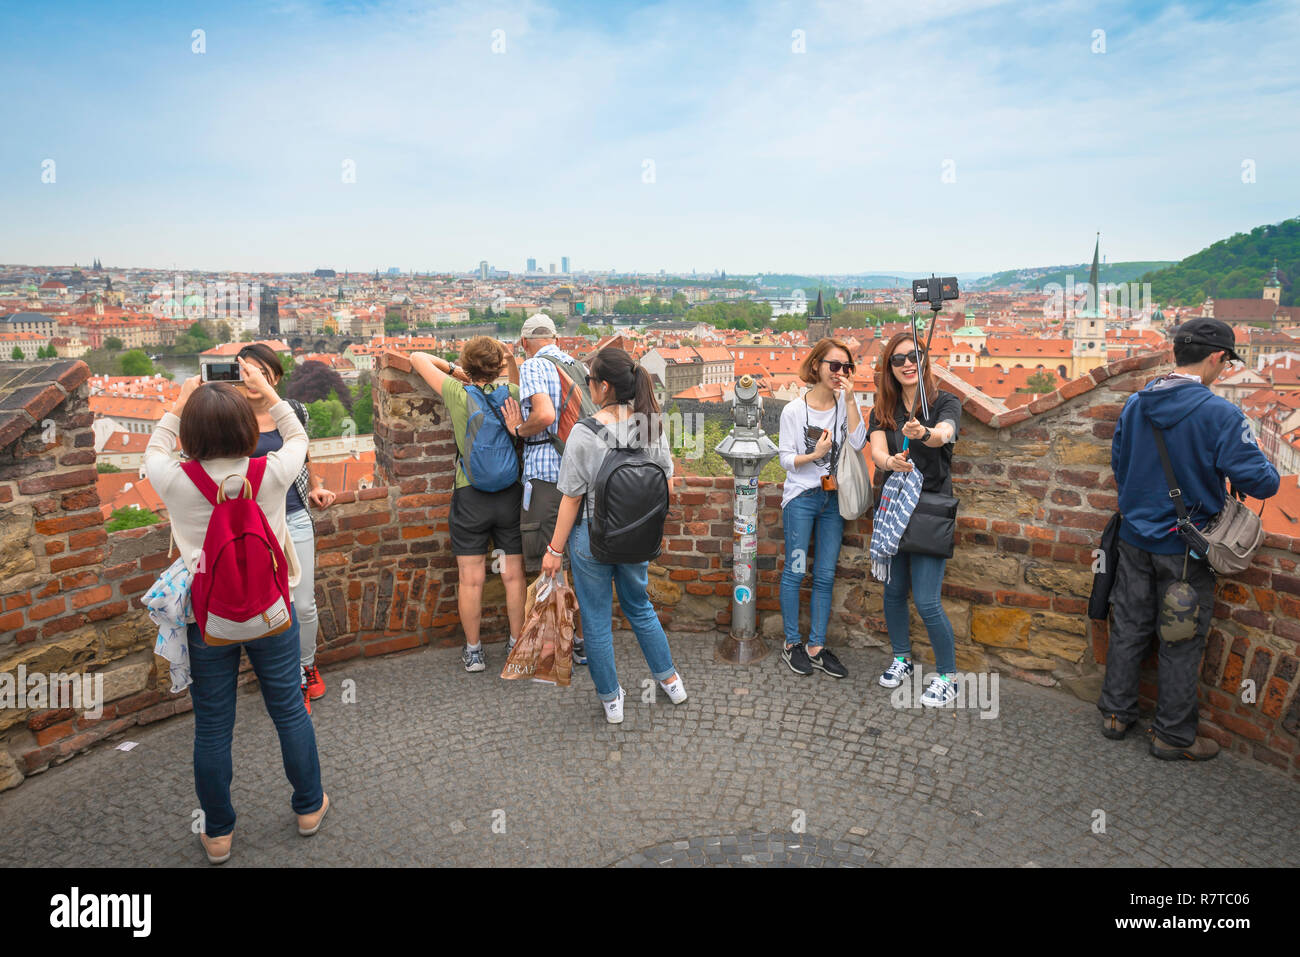 Tourists selfie, tourists take photos from a terrace on the Prague Castle Garden wall in the Hrad district, Prague, Czech Republic. - Stock Image